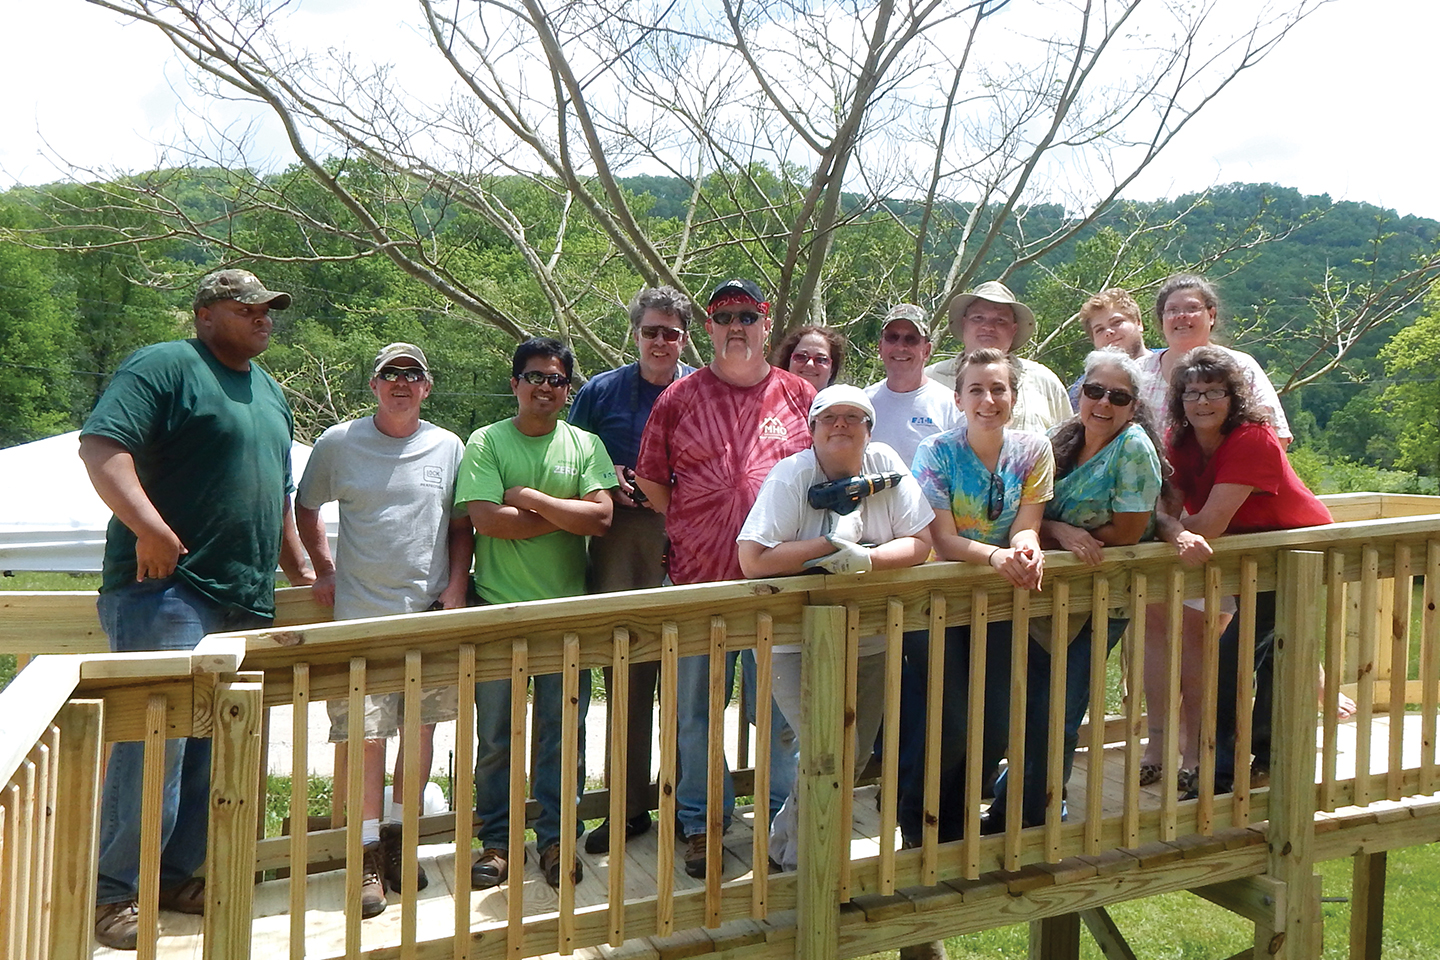 A group of MHO volunteers smile as they build.